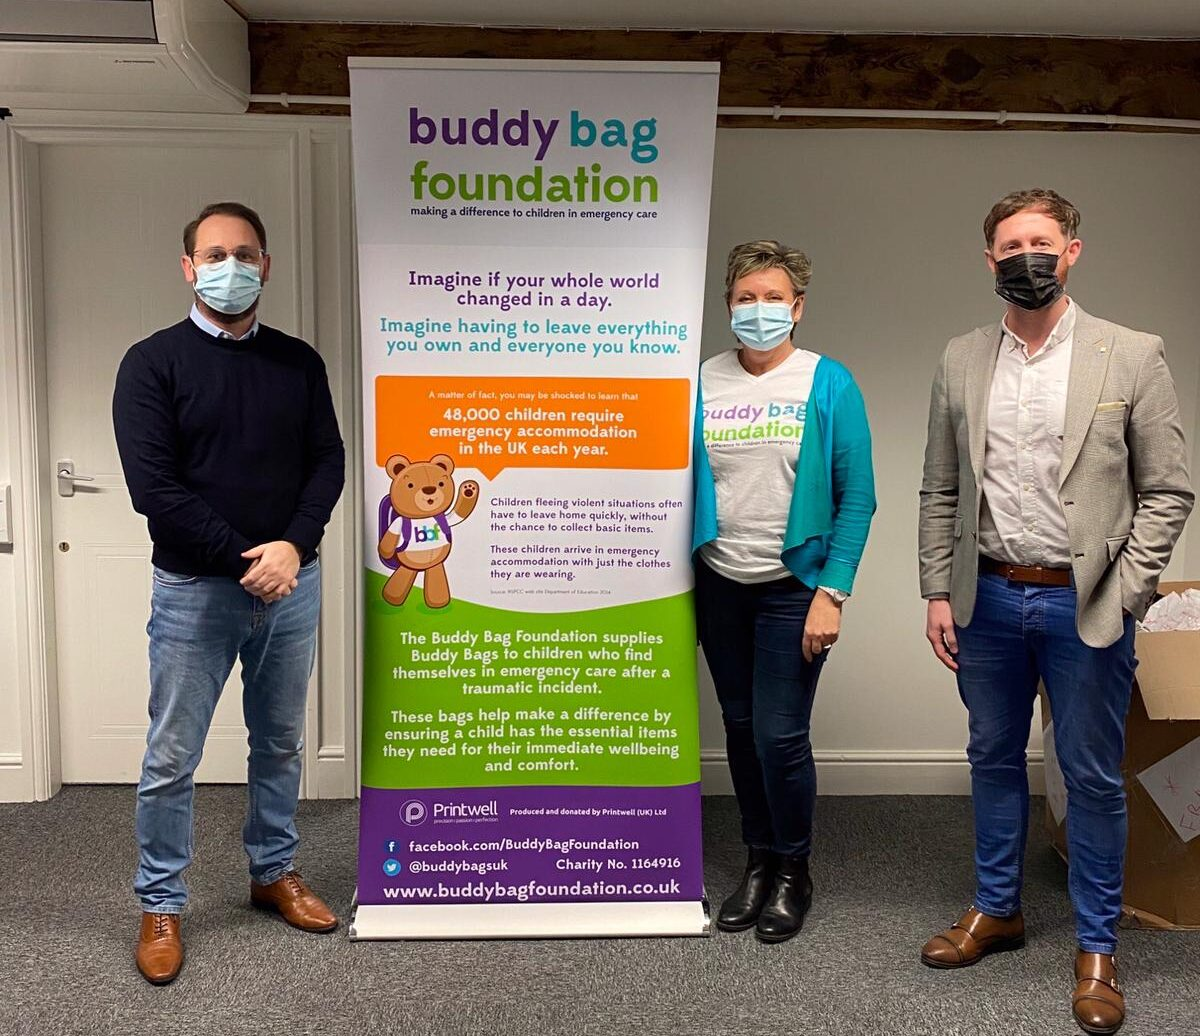 Caring start-up supports children in women's refuge with Buddy Bag pack